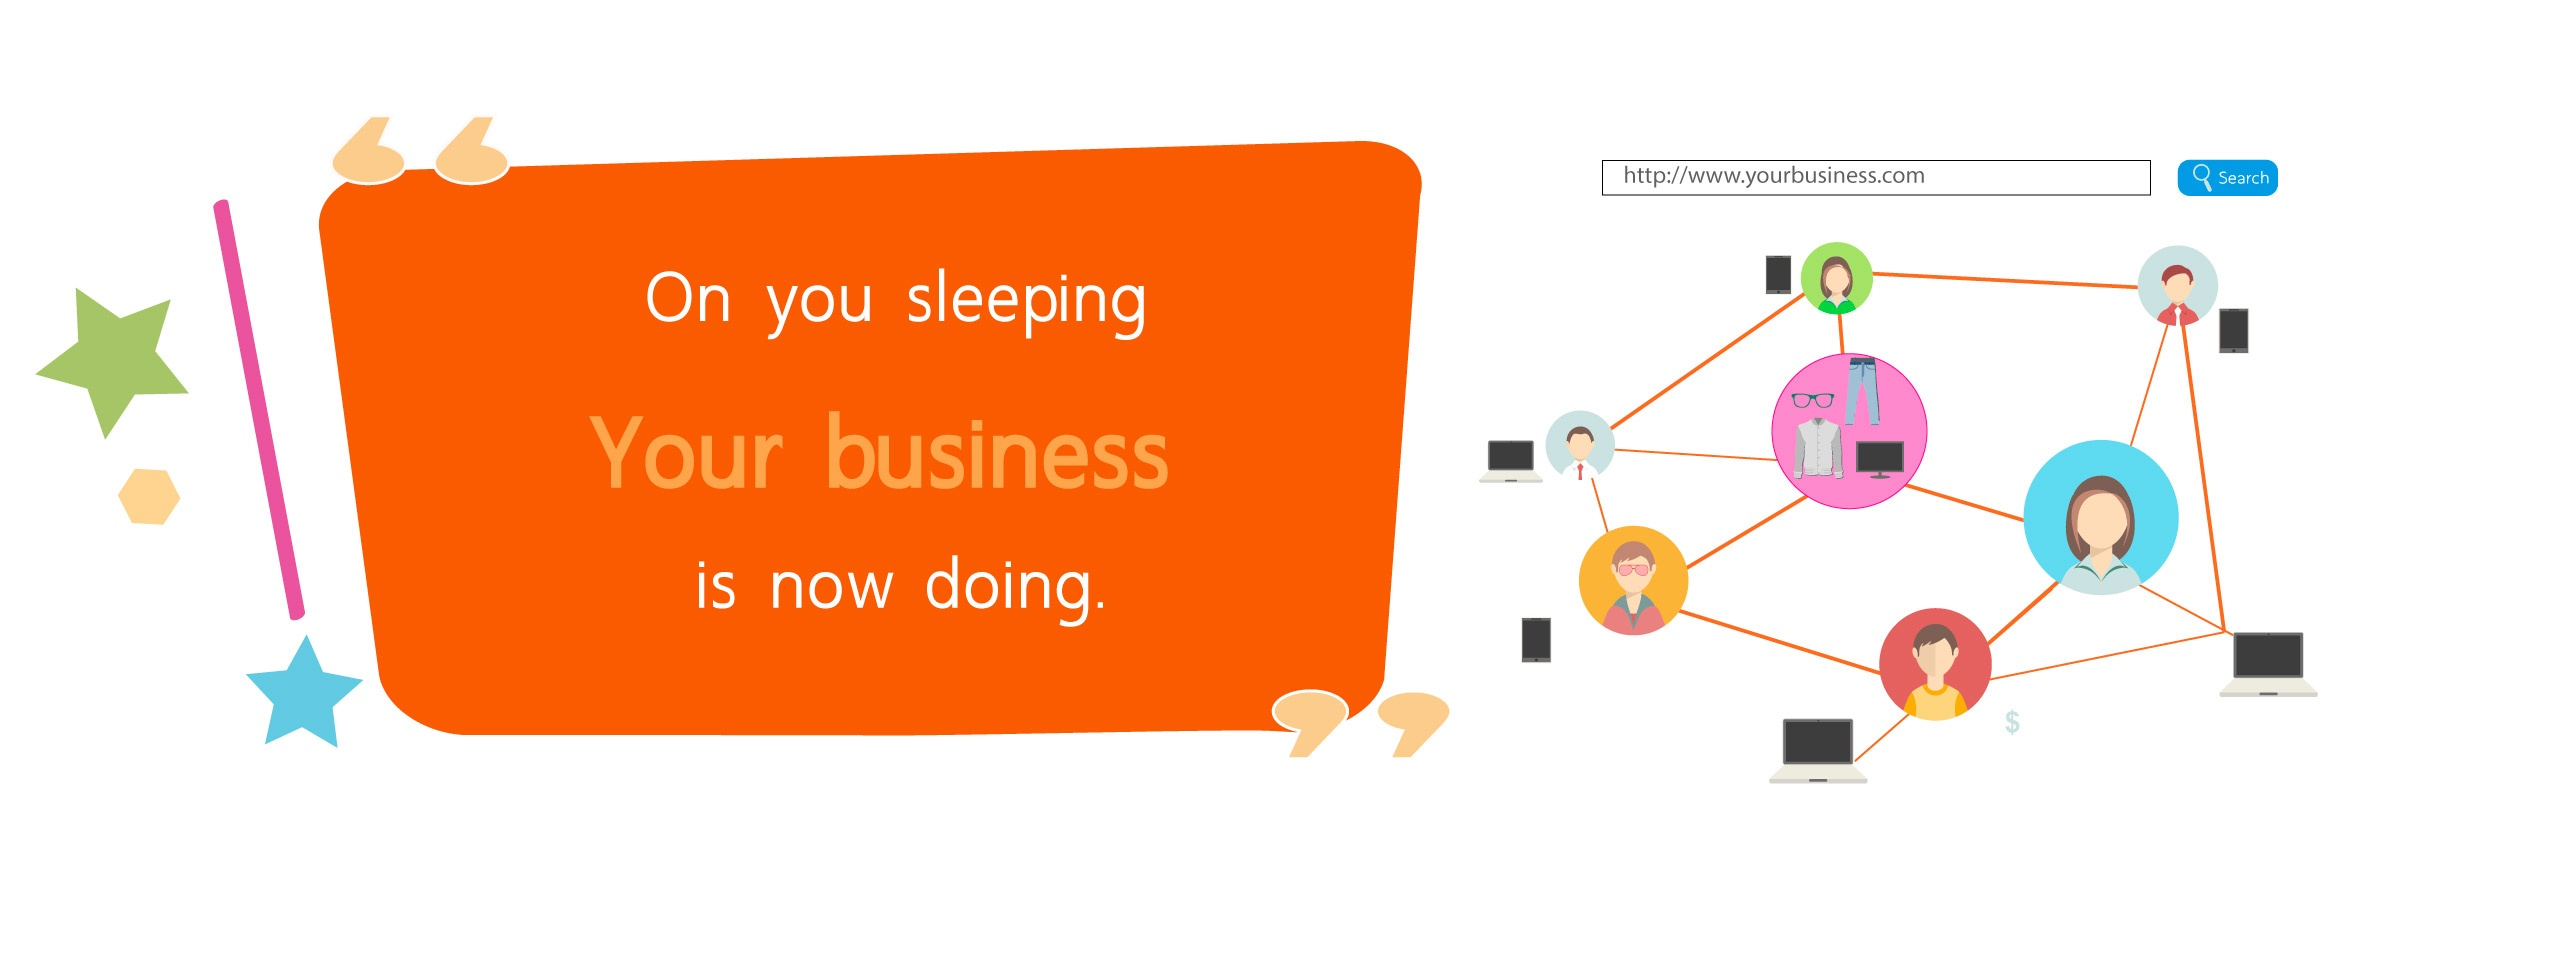 On you sleeping your business is no doing.